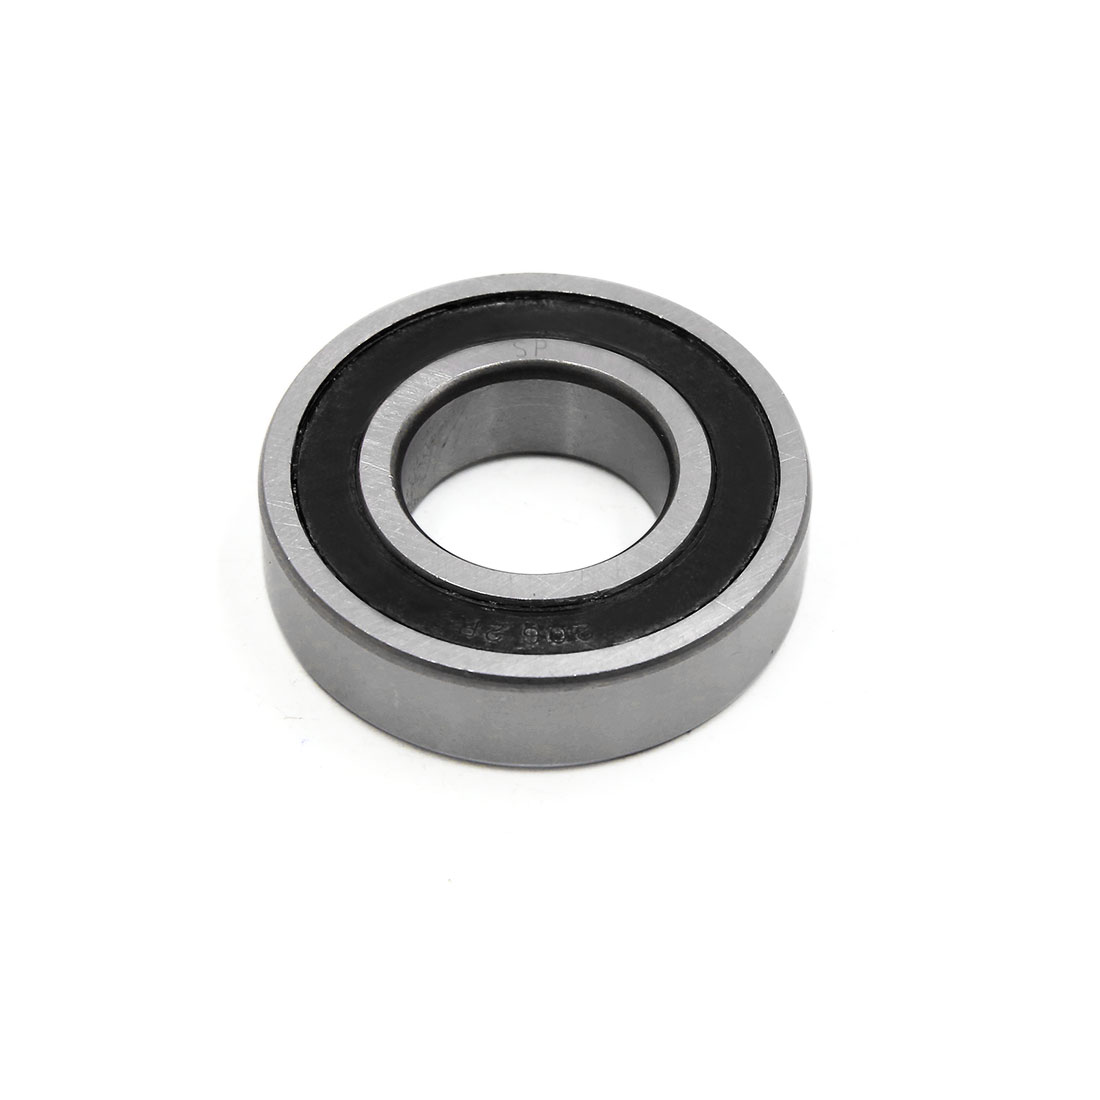 6206-2RS Scooter Motorcycle Sealed Deep Groove Ball Bearing 62 x 30 x 16mm